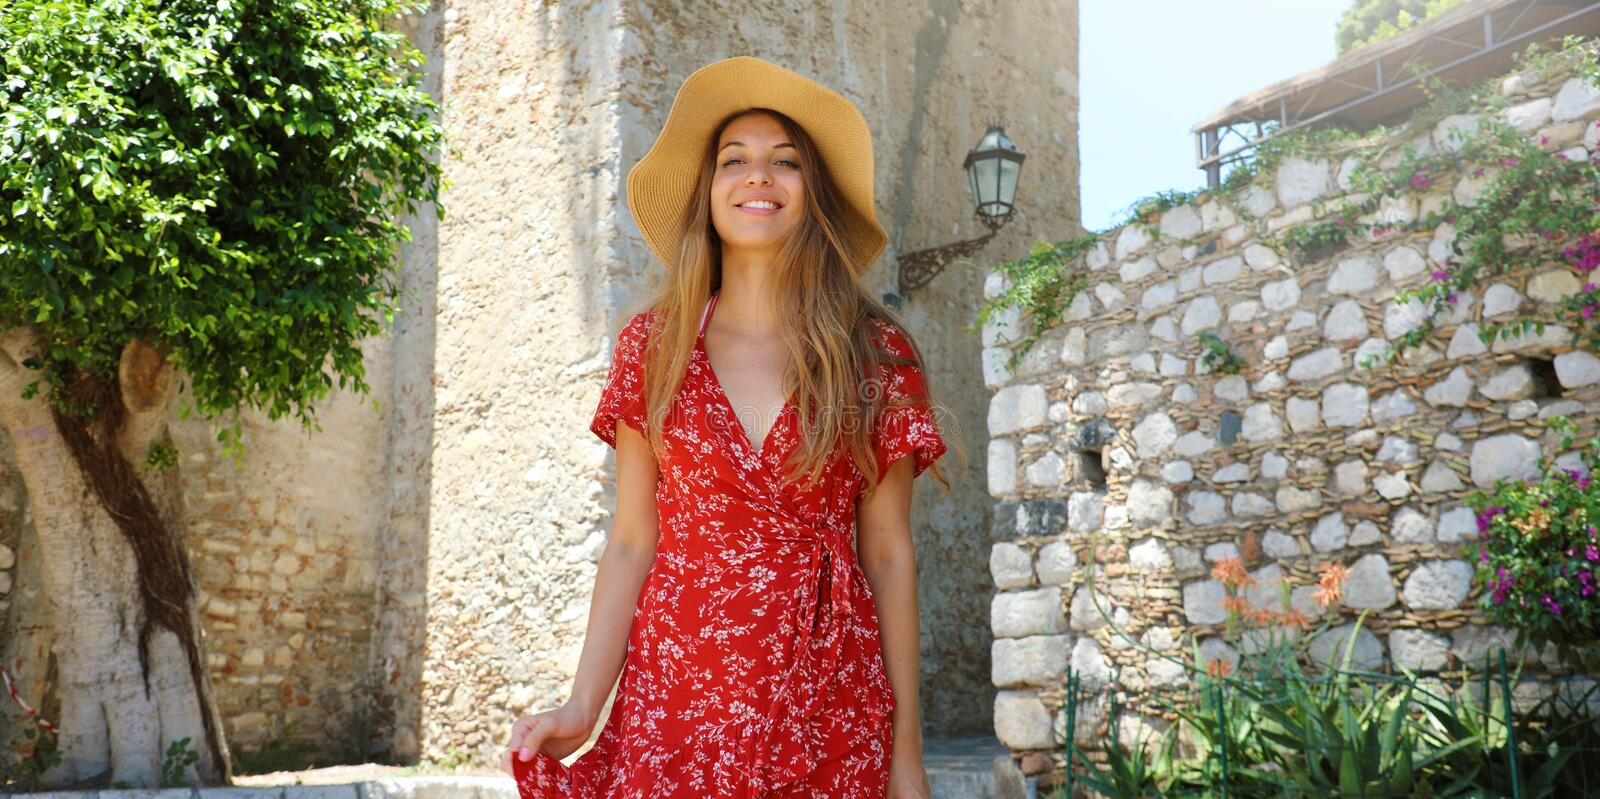 Summer holiday in Italy. Portrait of young woman with straw hat and red dress walking in sicilian village of Taormina, Italy royalty free stock photo